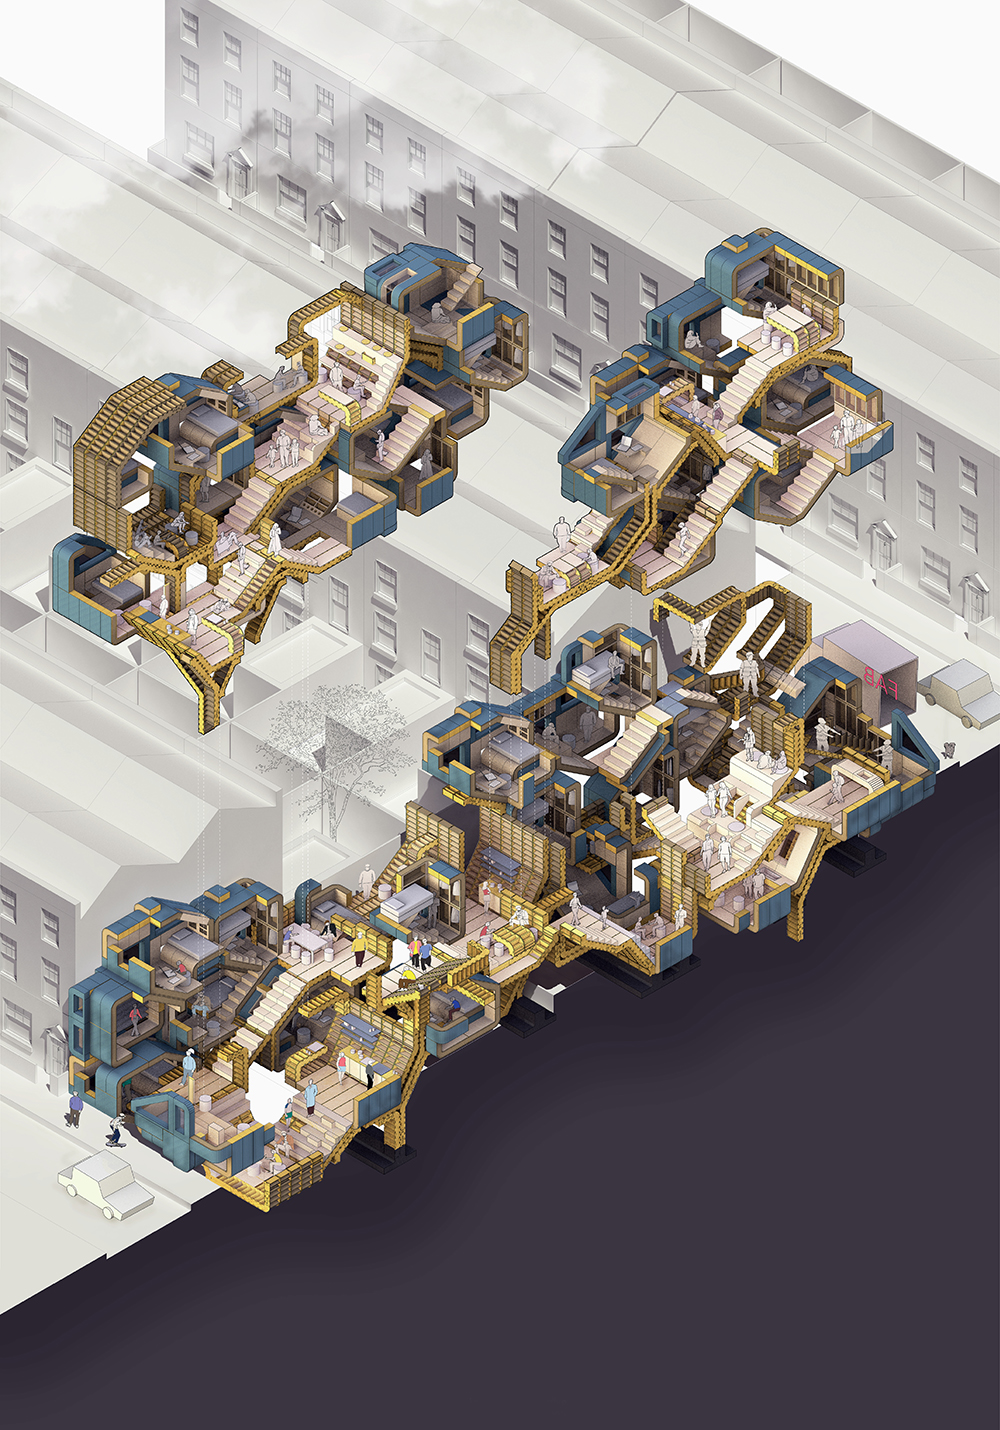 Alessandro Conning-Rowland - Chamfer: A Cooperative Housing Platform, Year 4